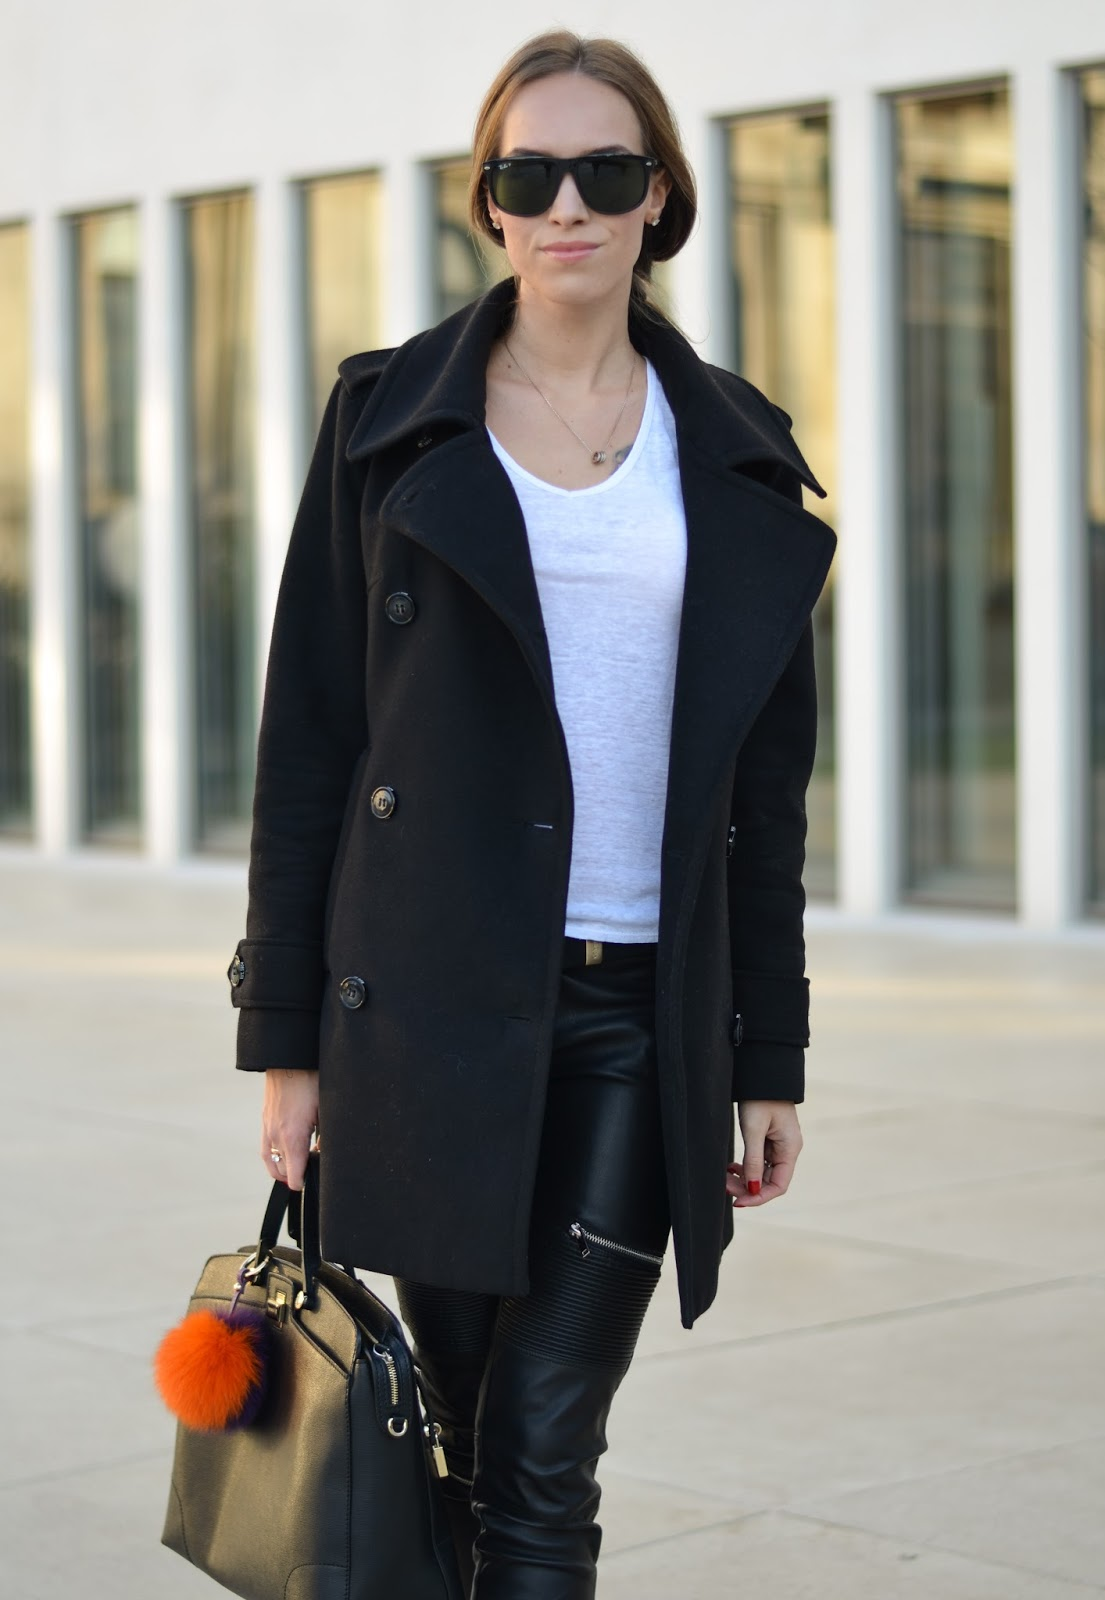 kristjaana mere minimalist fashion casual winter outfit